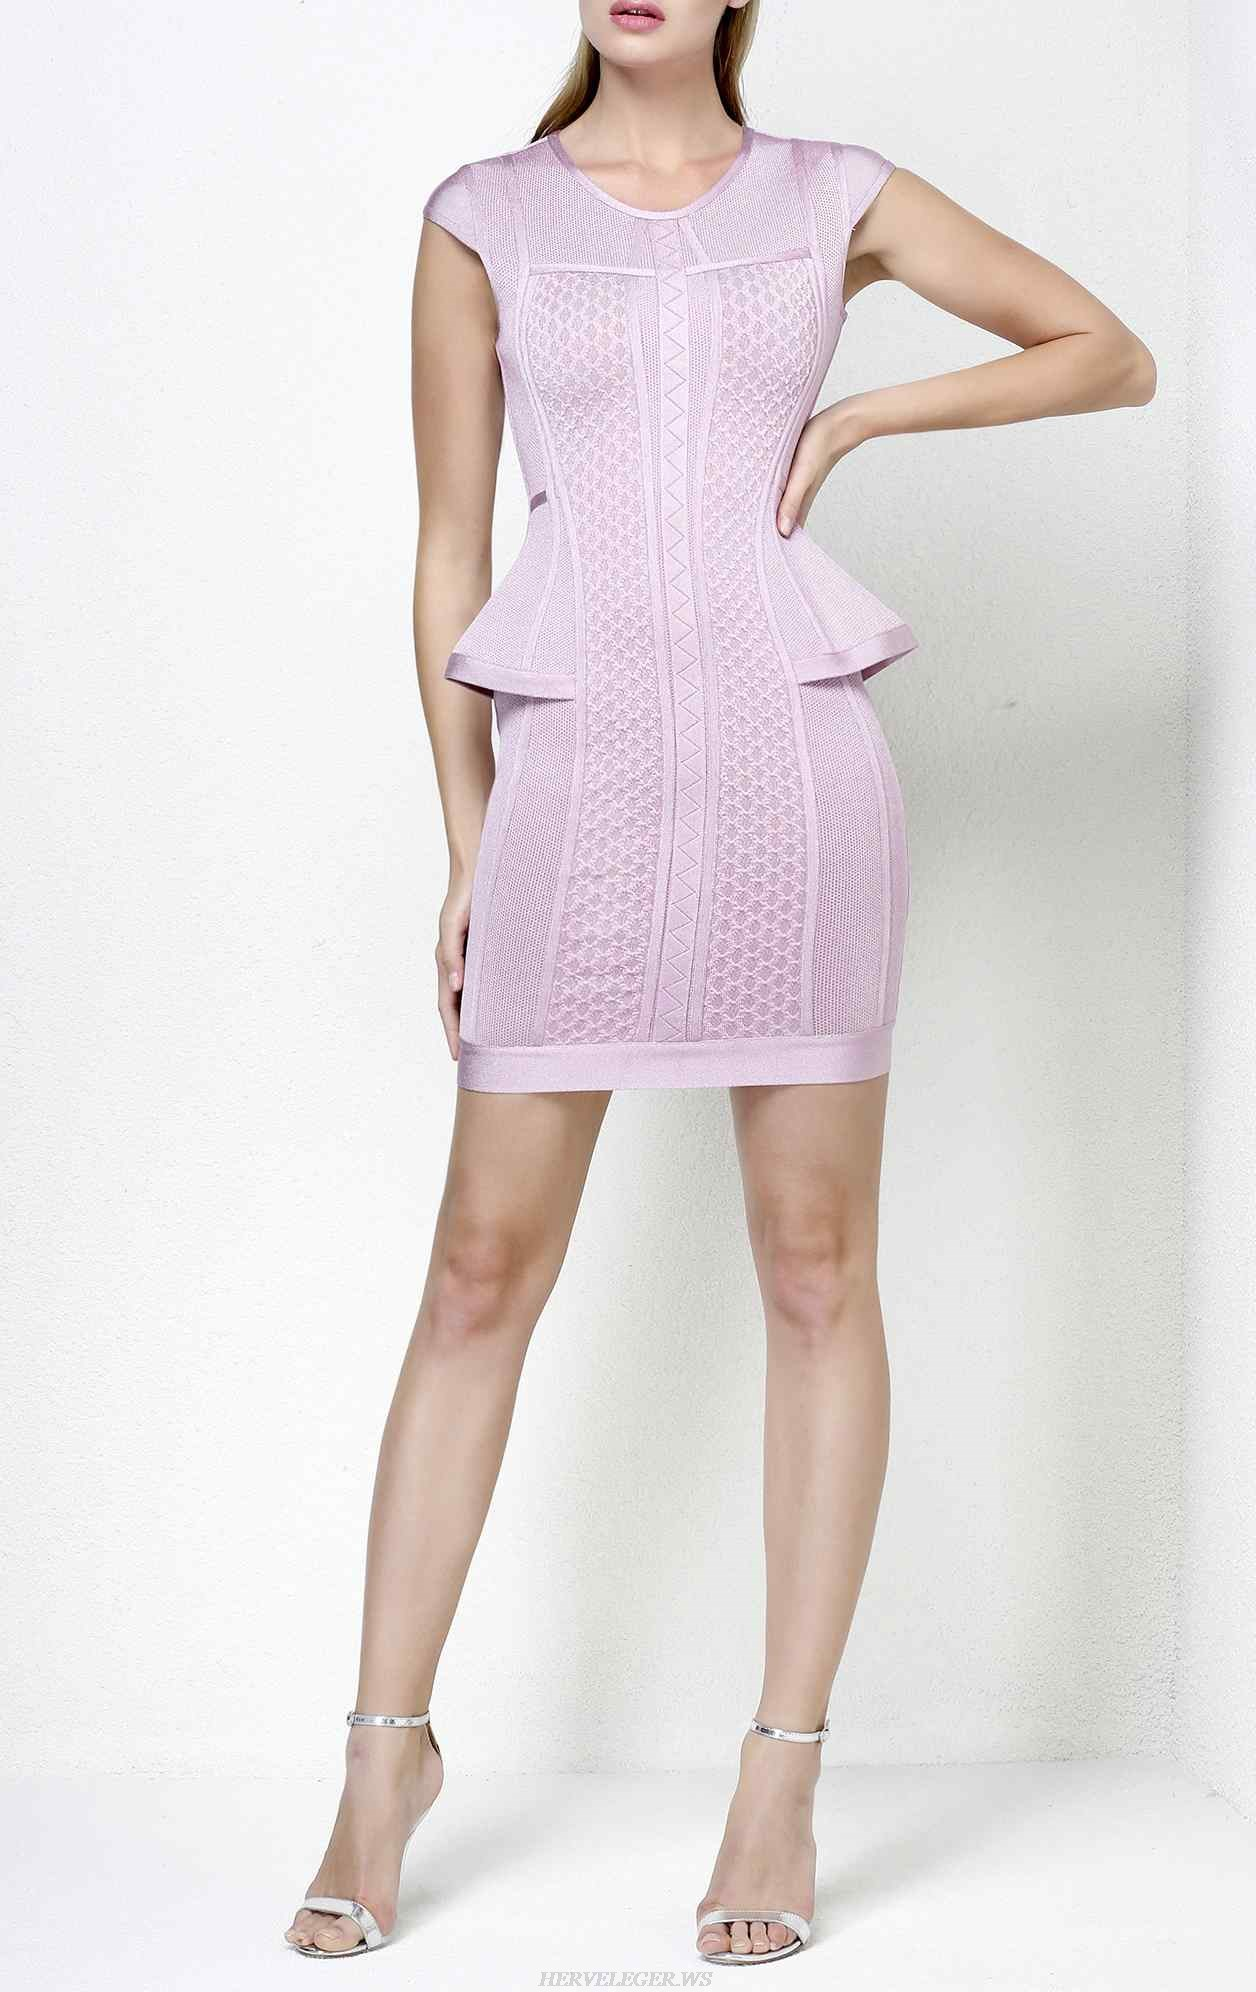 Herve Leger Astrid Multi Texture Mesh Dress